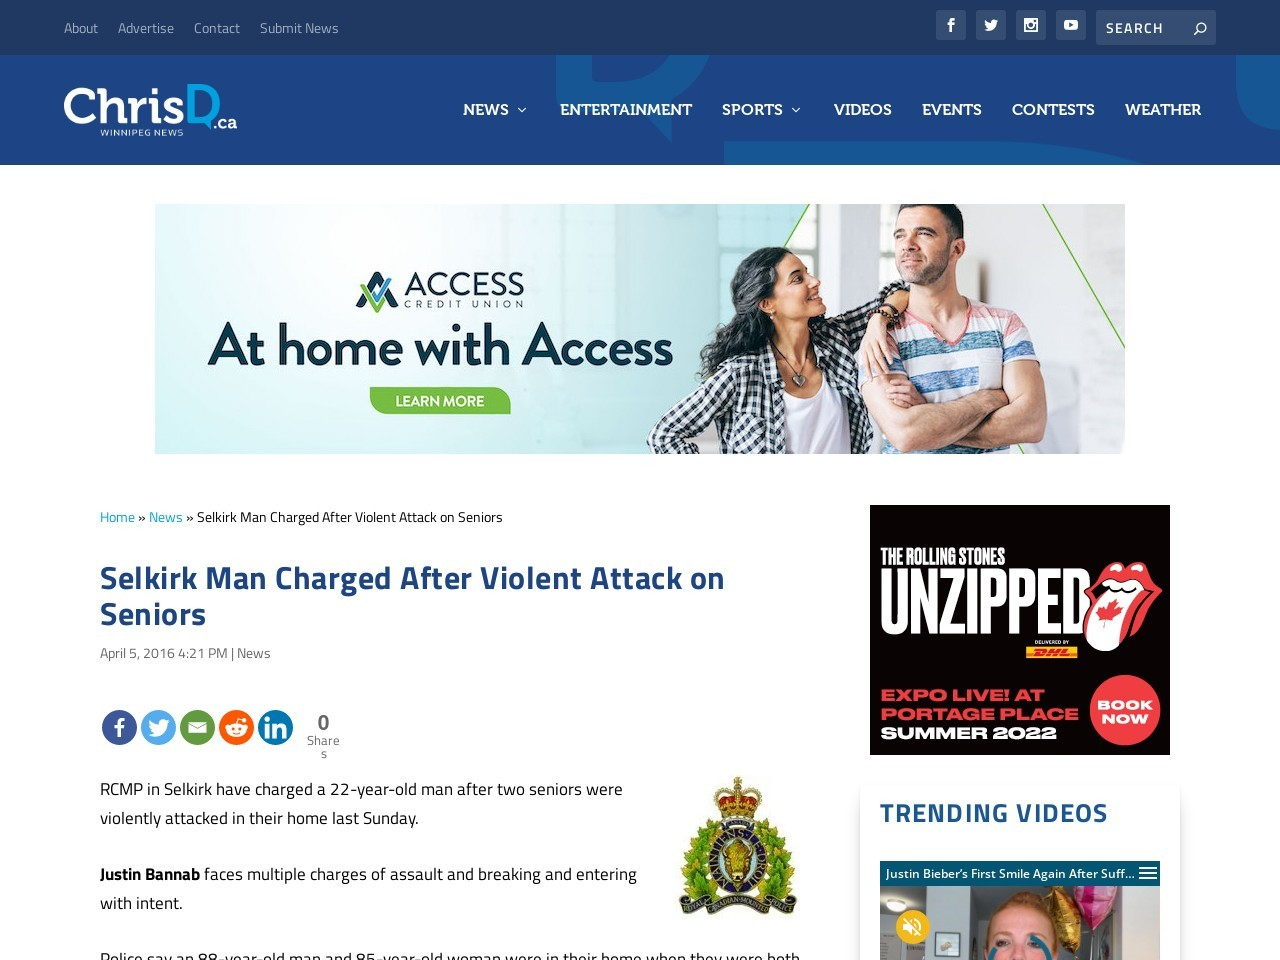 Selkirk Man Charged After Violent Attack on Seniors